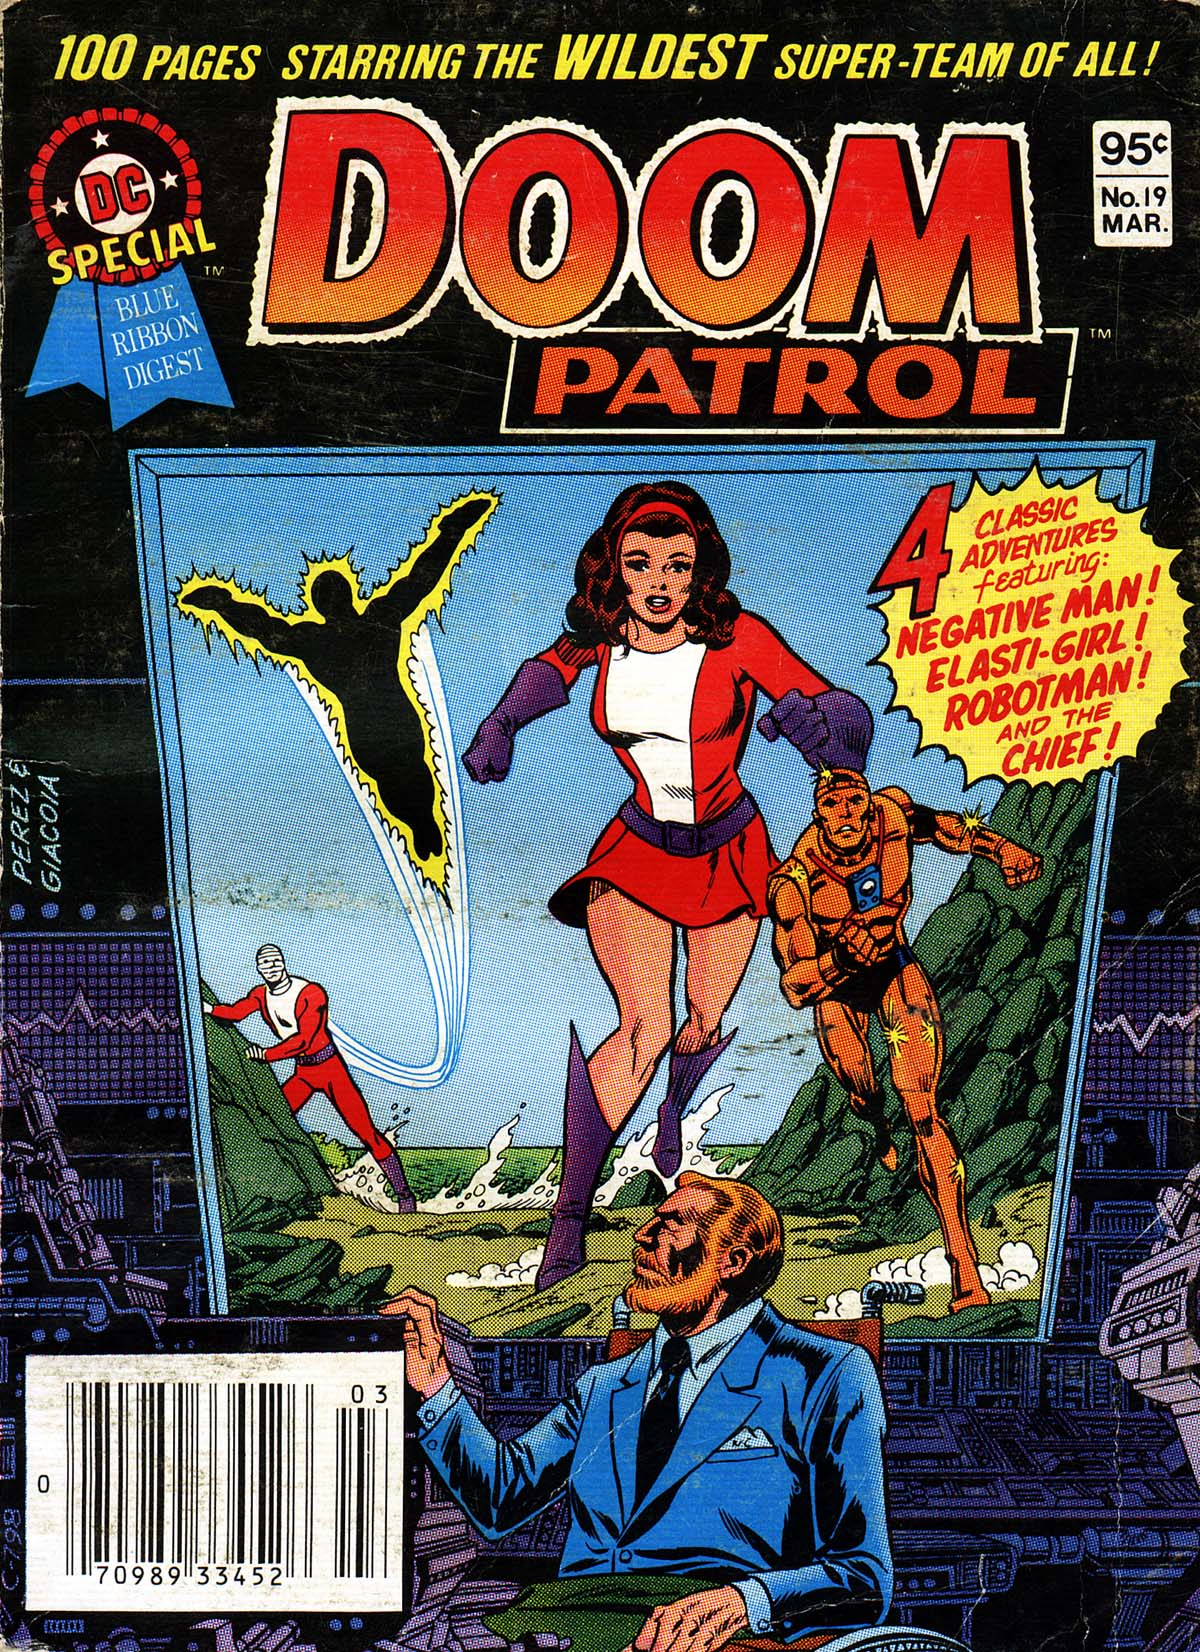 DC Special Blue Ribbon Digest 19 Page 1